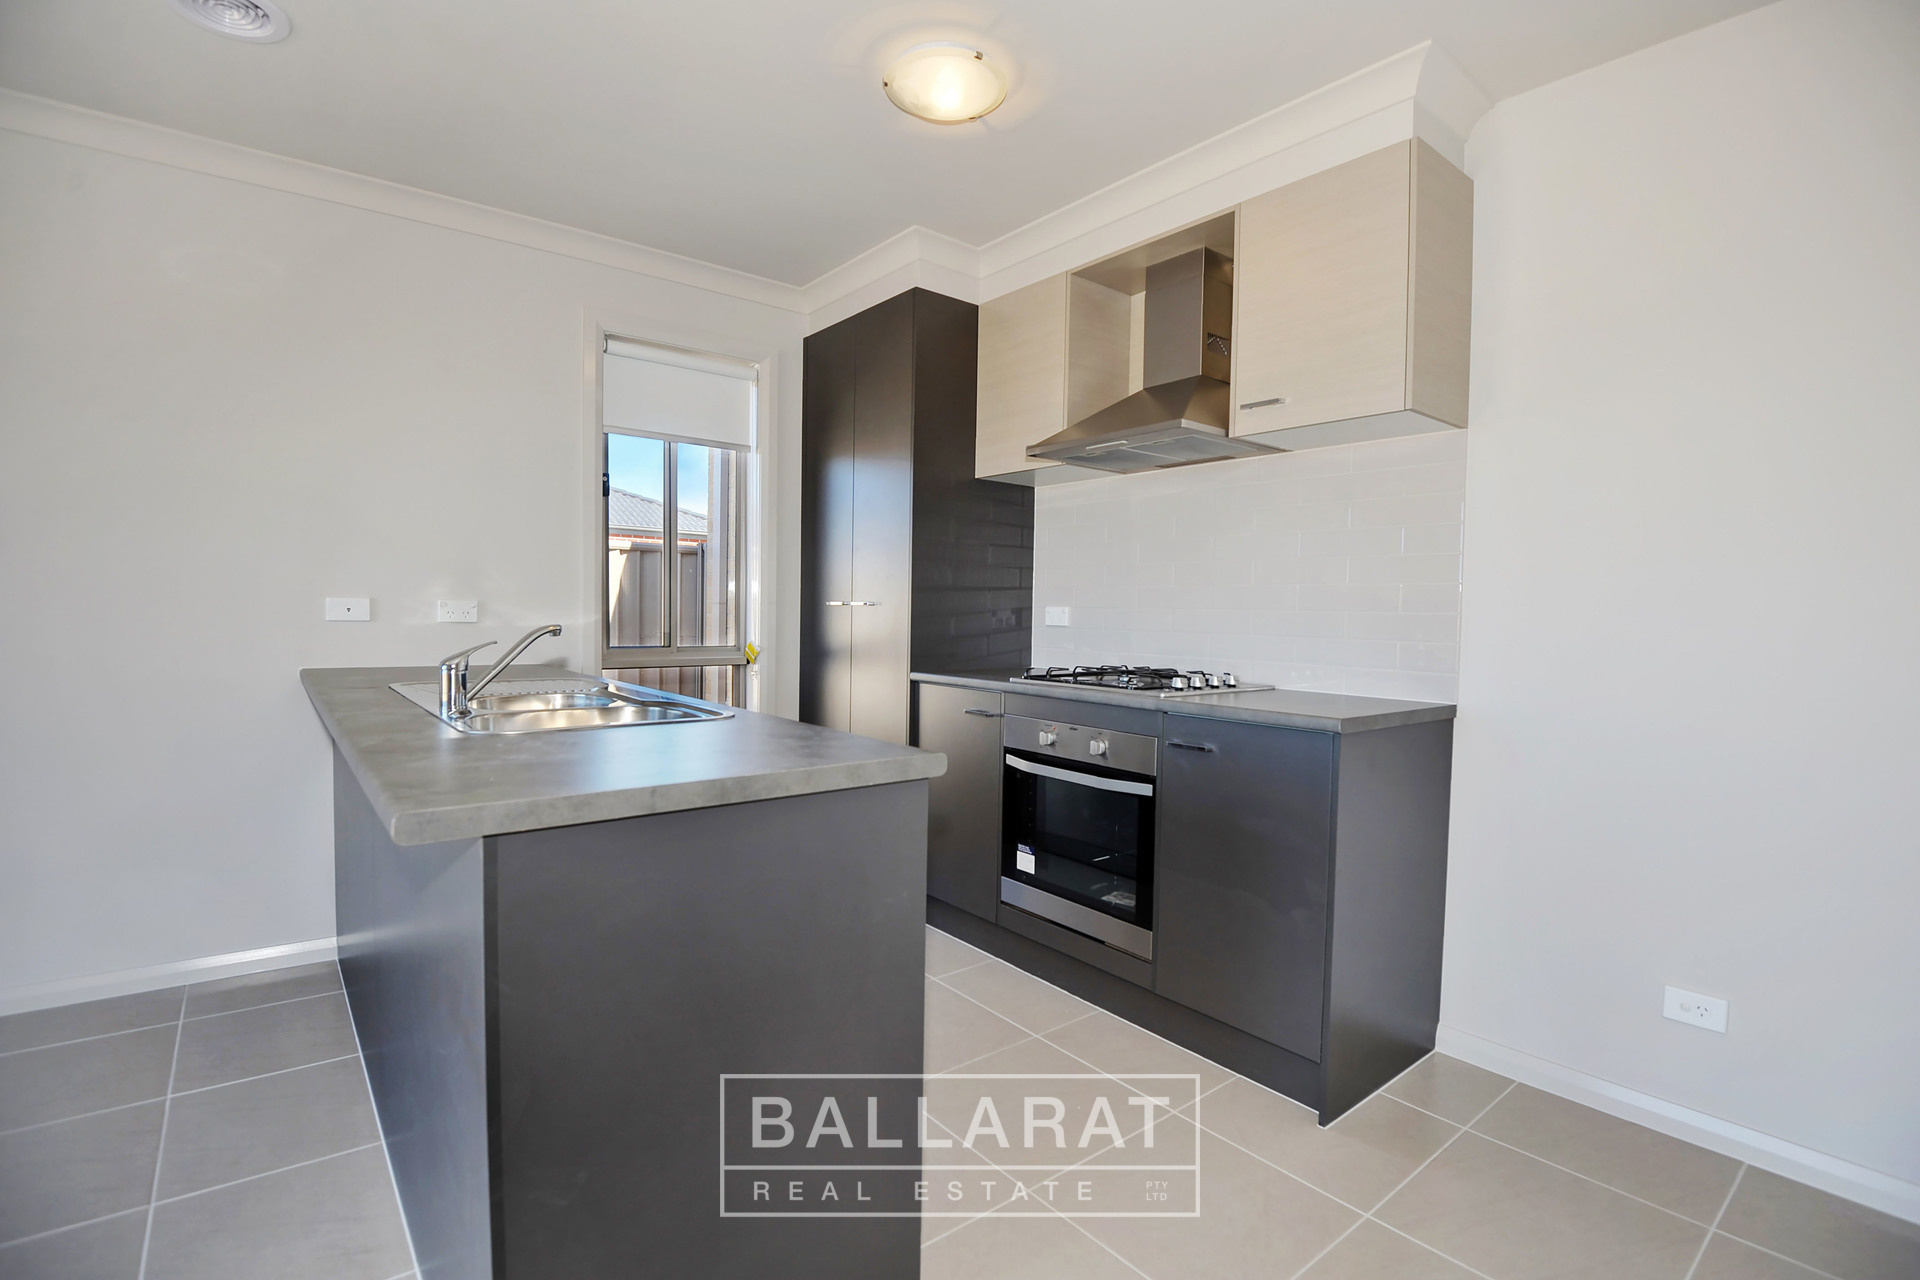 171 Ballarat-Carngham Road Winter Valley